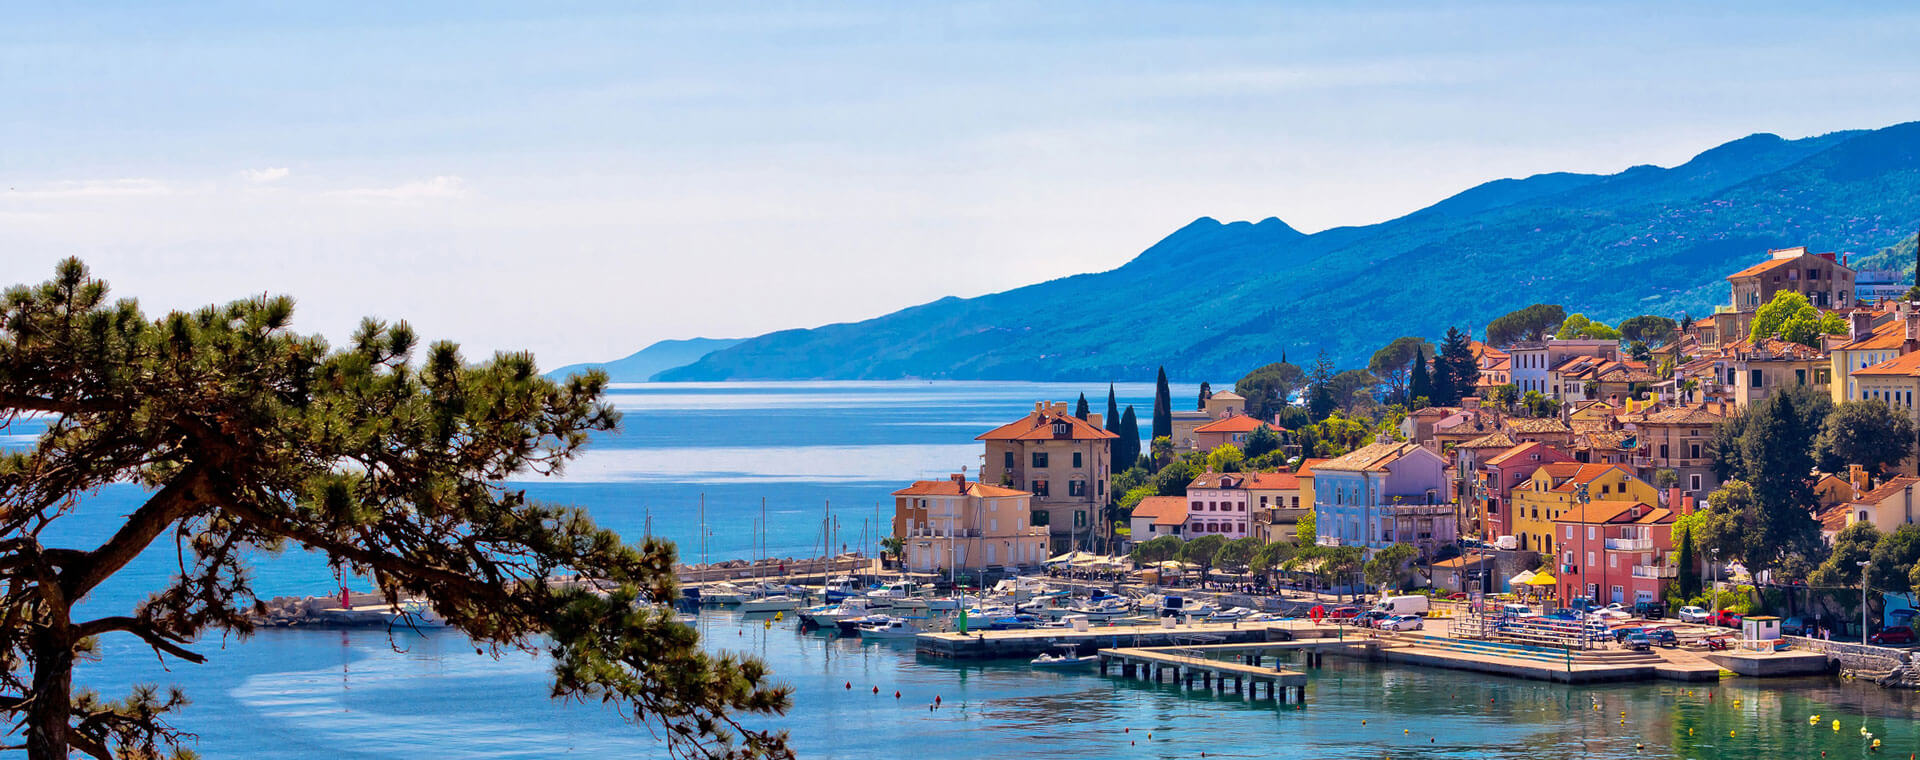 Kvarner and highlands